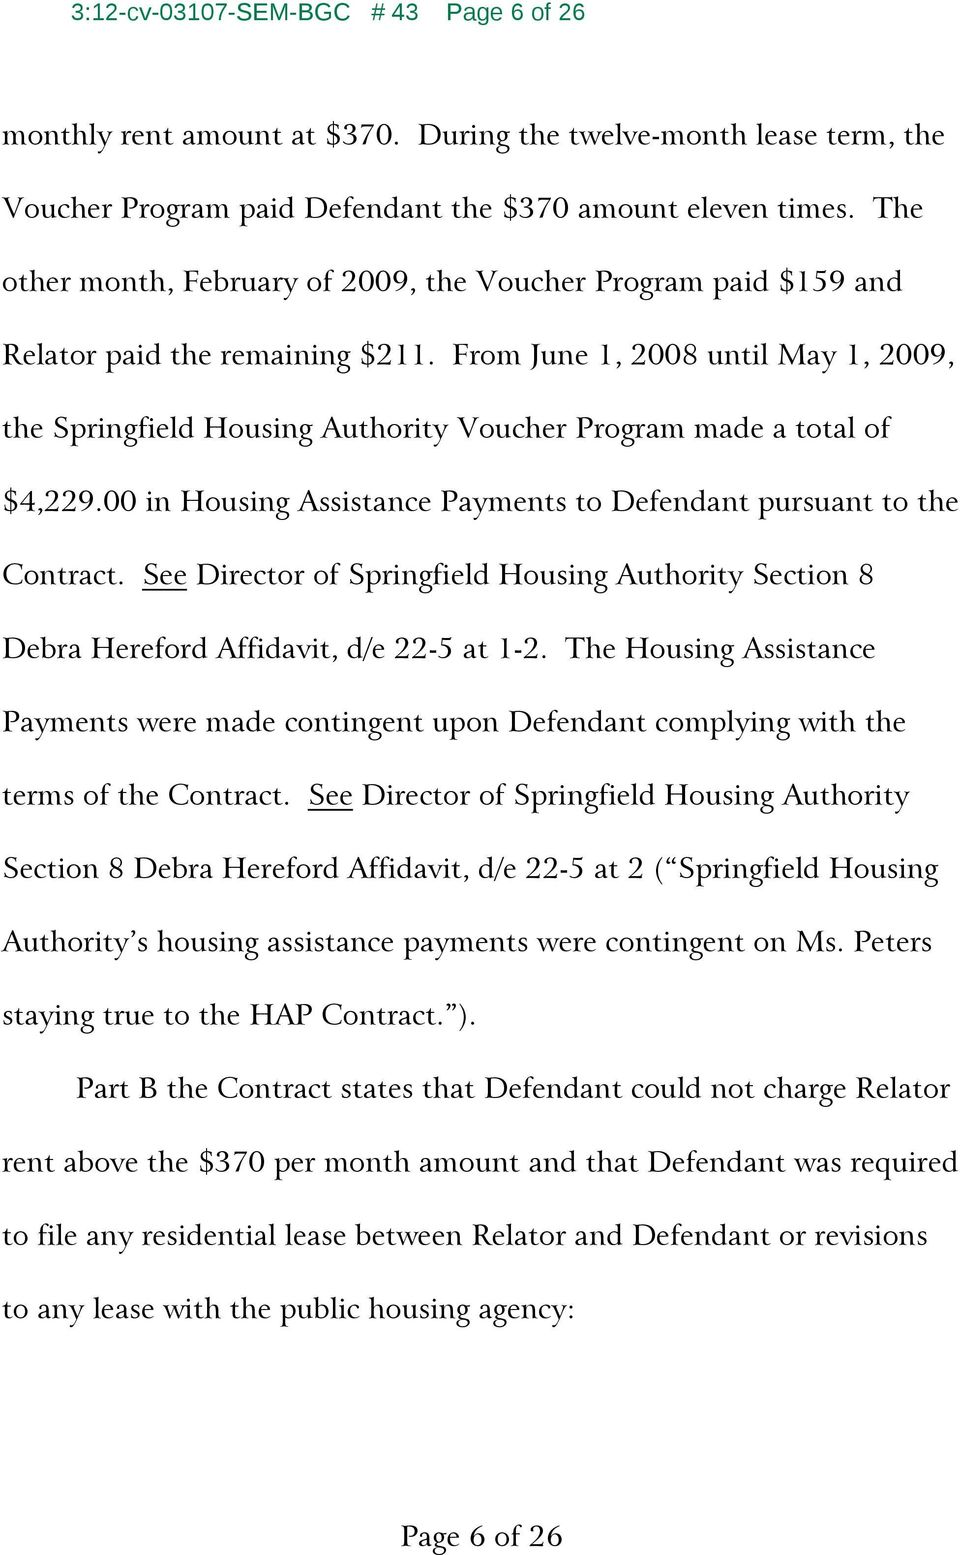 From June 1, 2008 until May 1, 2009, the Springfield Housing Authority Voucher Program made a total of $4,229.00 in Housing Assistance Payments to Defendant pursuant to the Contract.